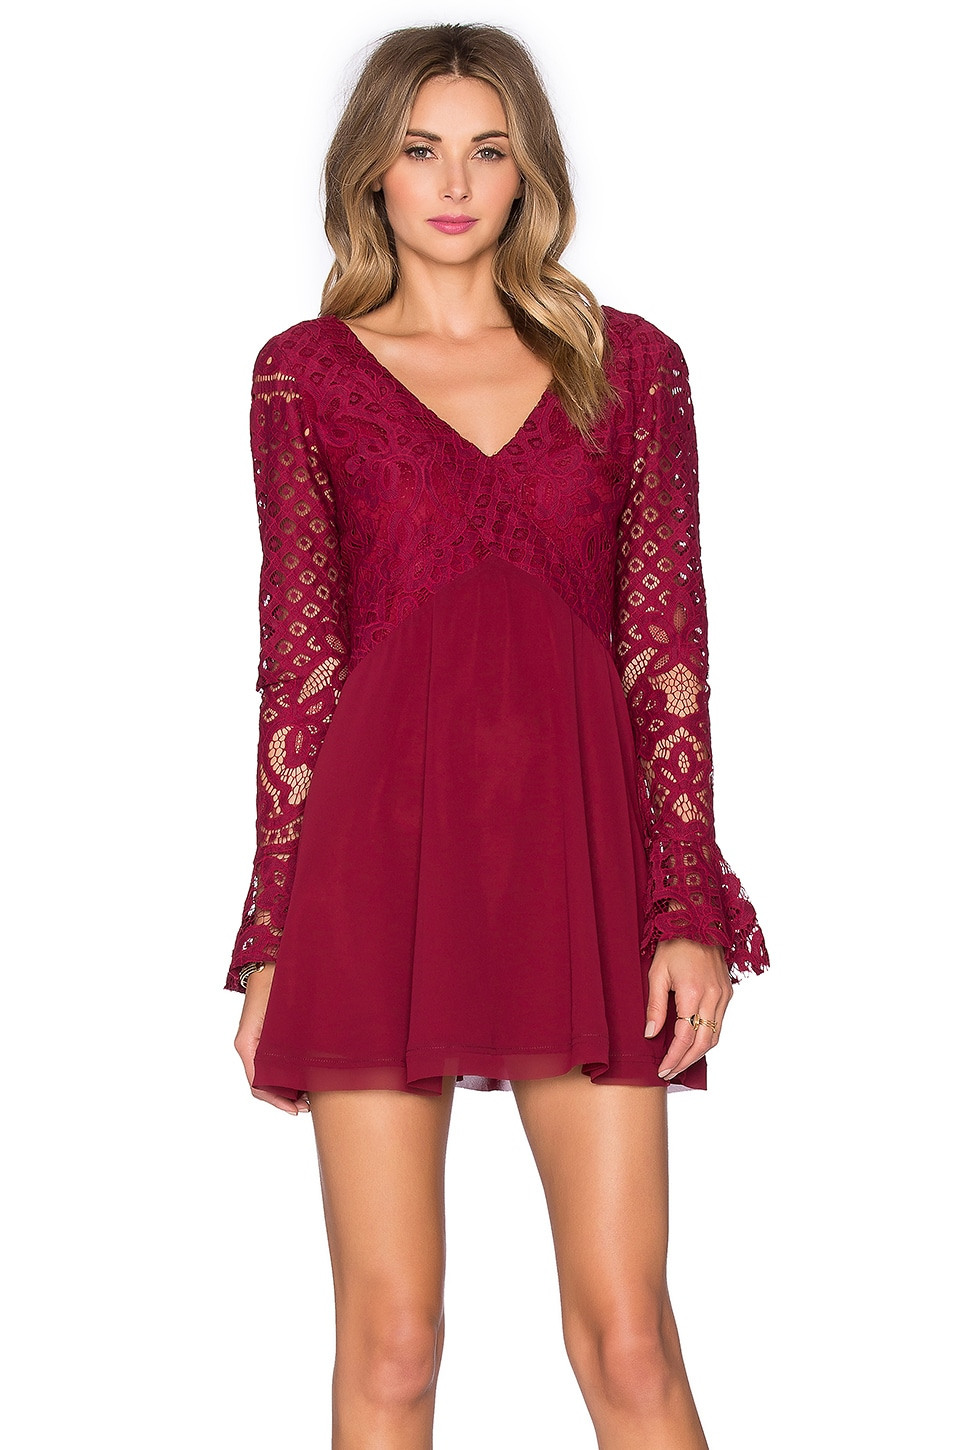 Tularosa x REVOLVE Skylar Dress in Wine